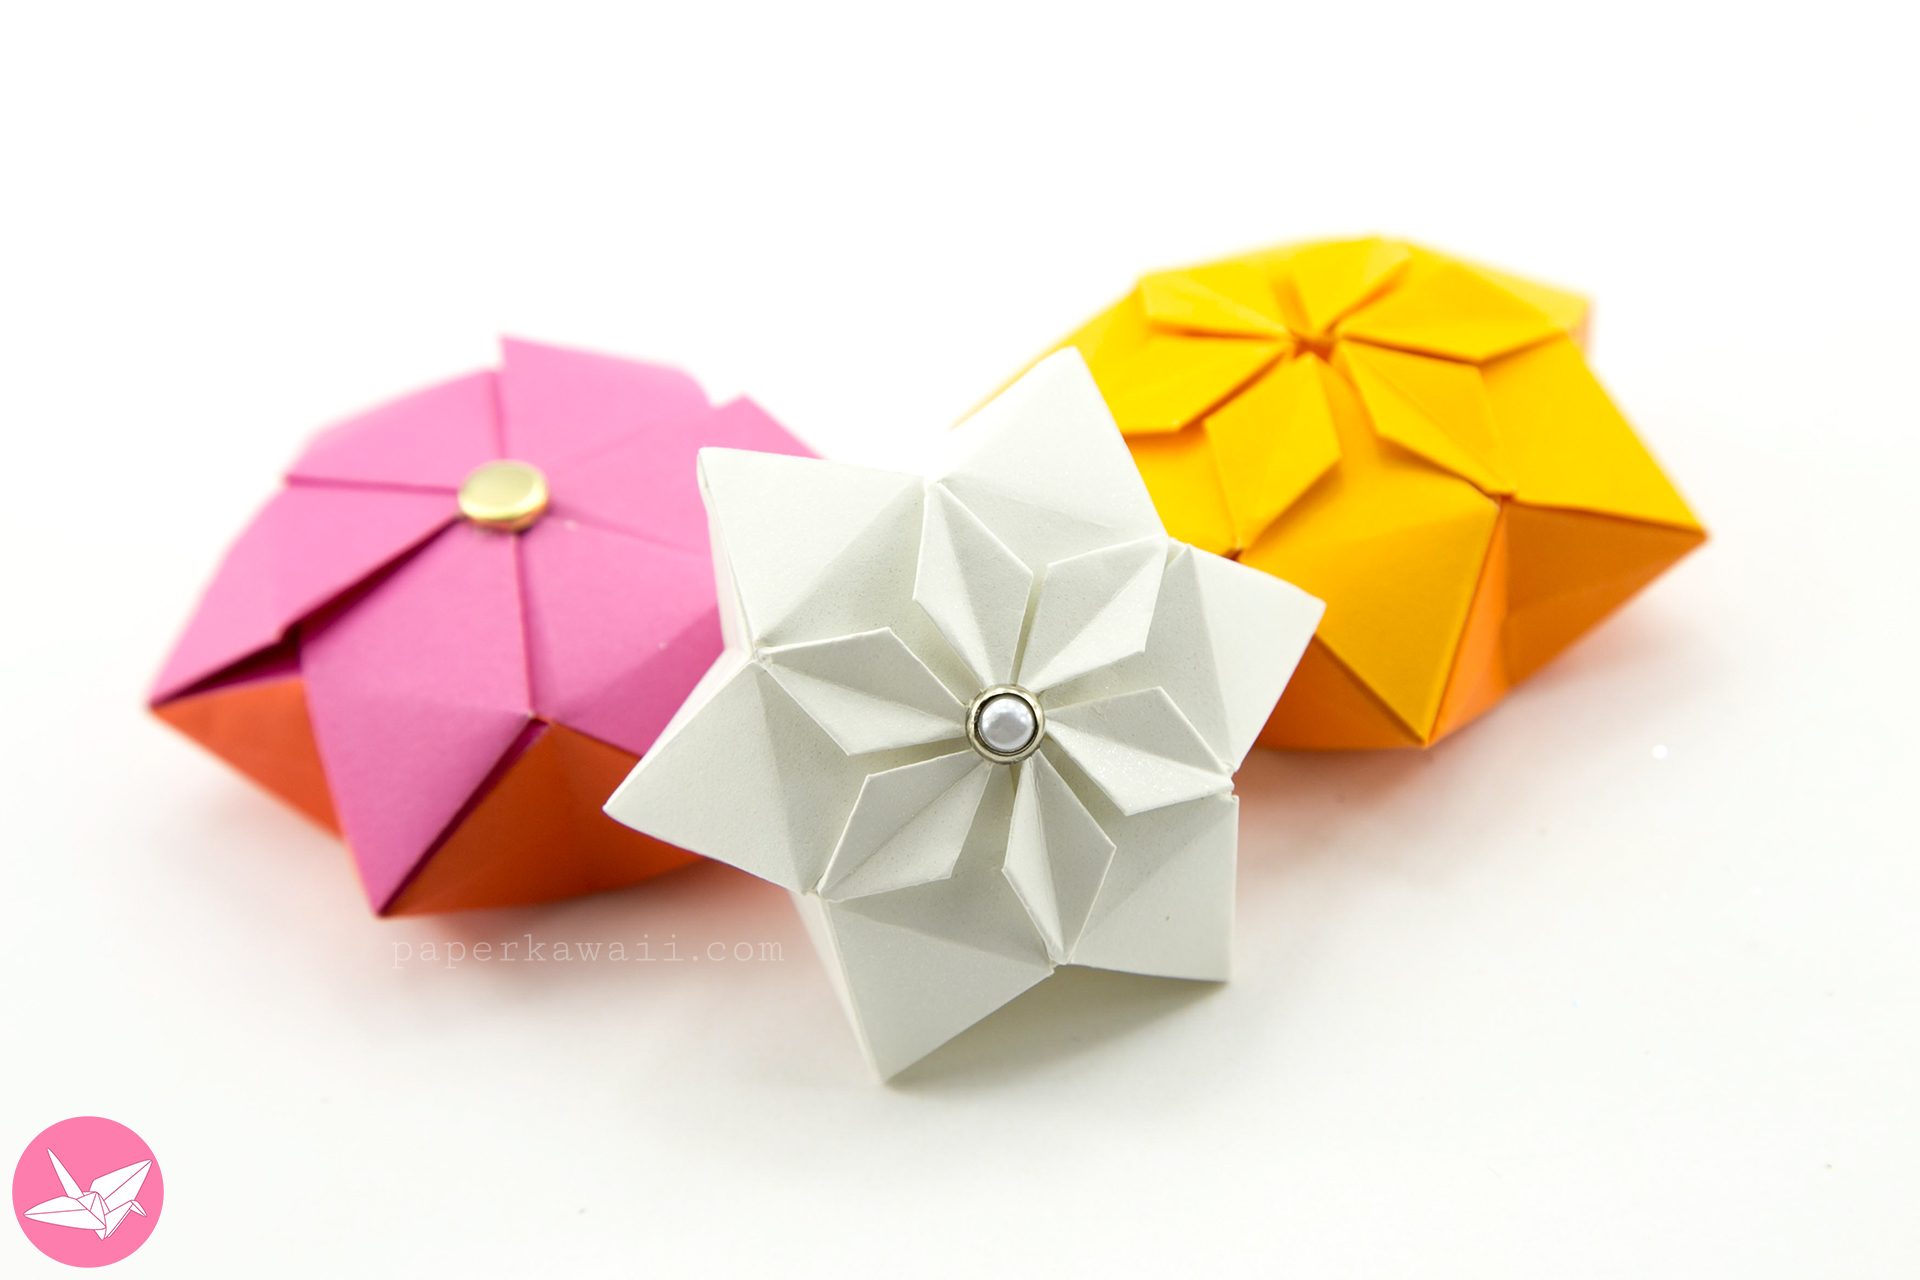 Origami Hexagonal Puffy Star Tutorial - Paper Kawaii - photo#20